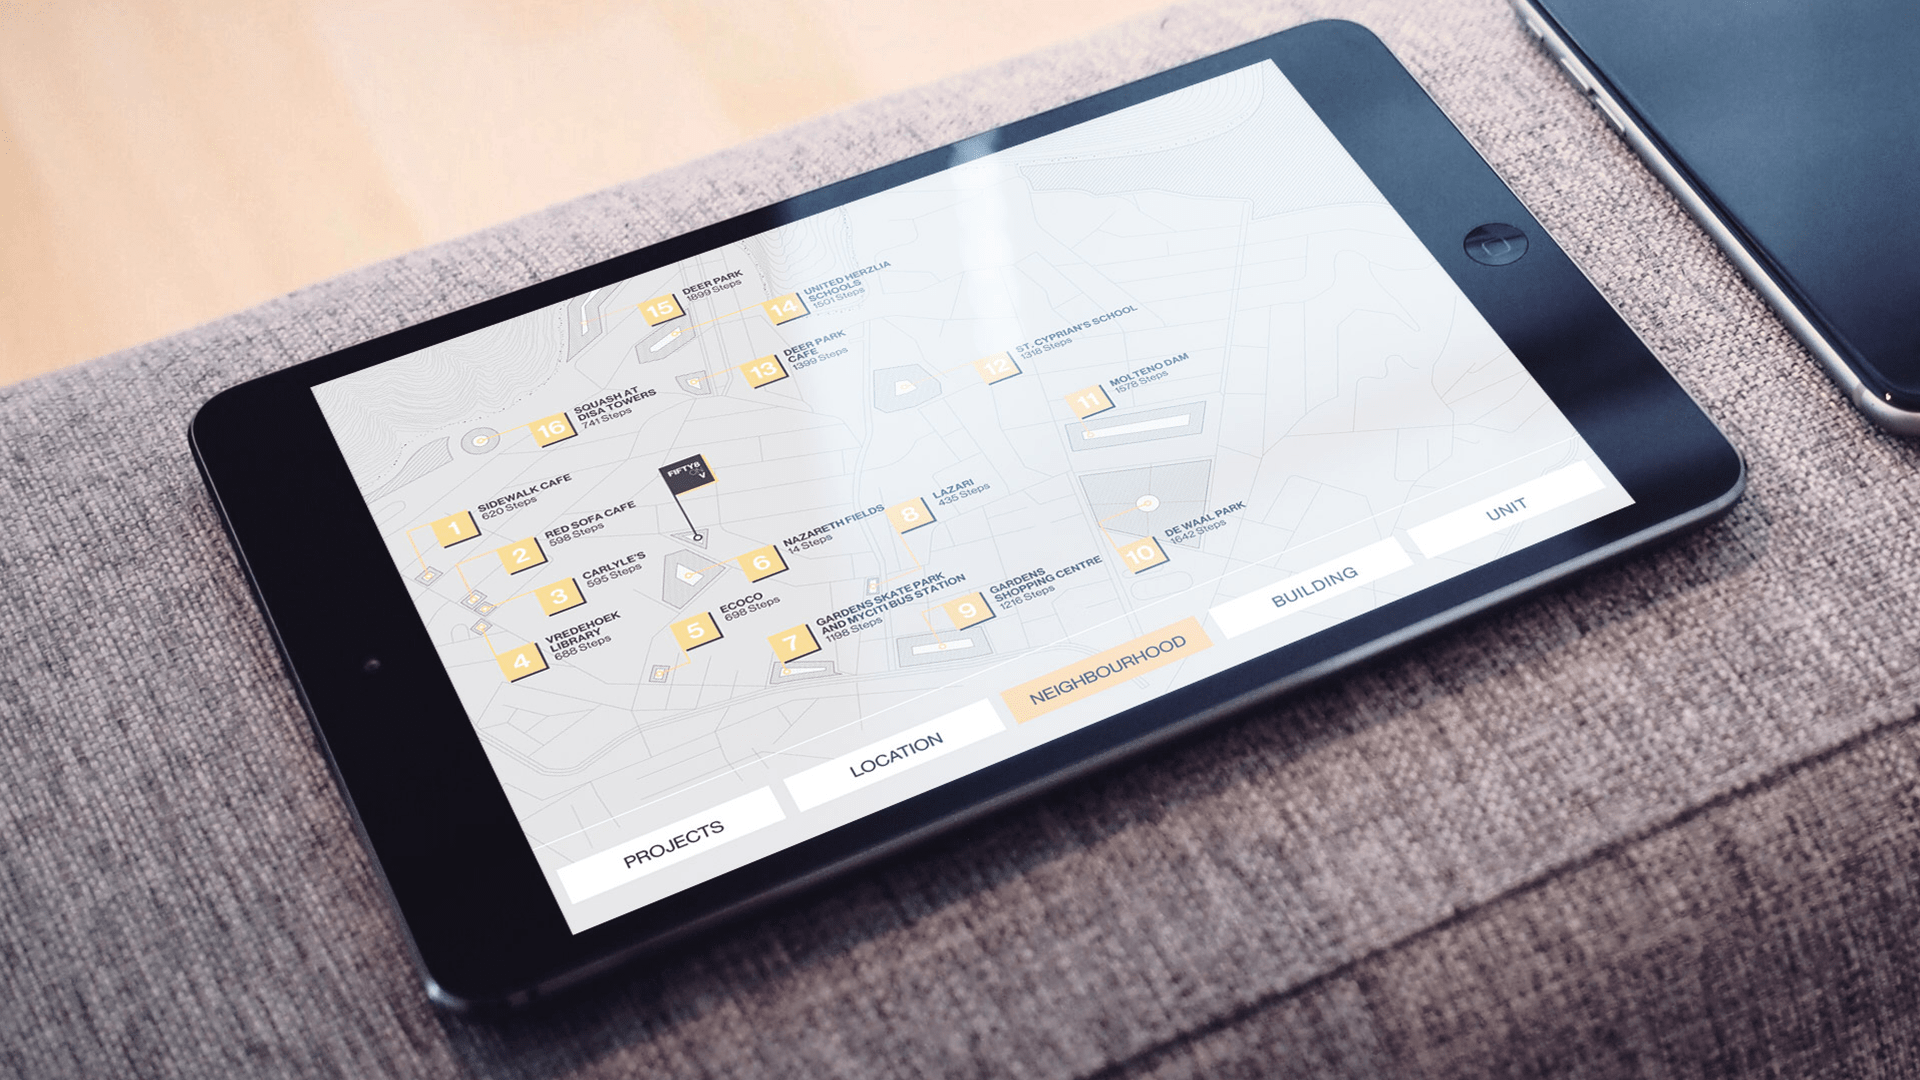 BLOK Application created by Formula D interactive